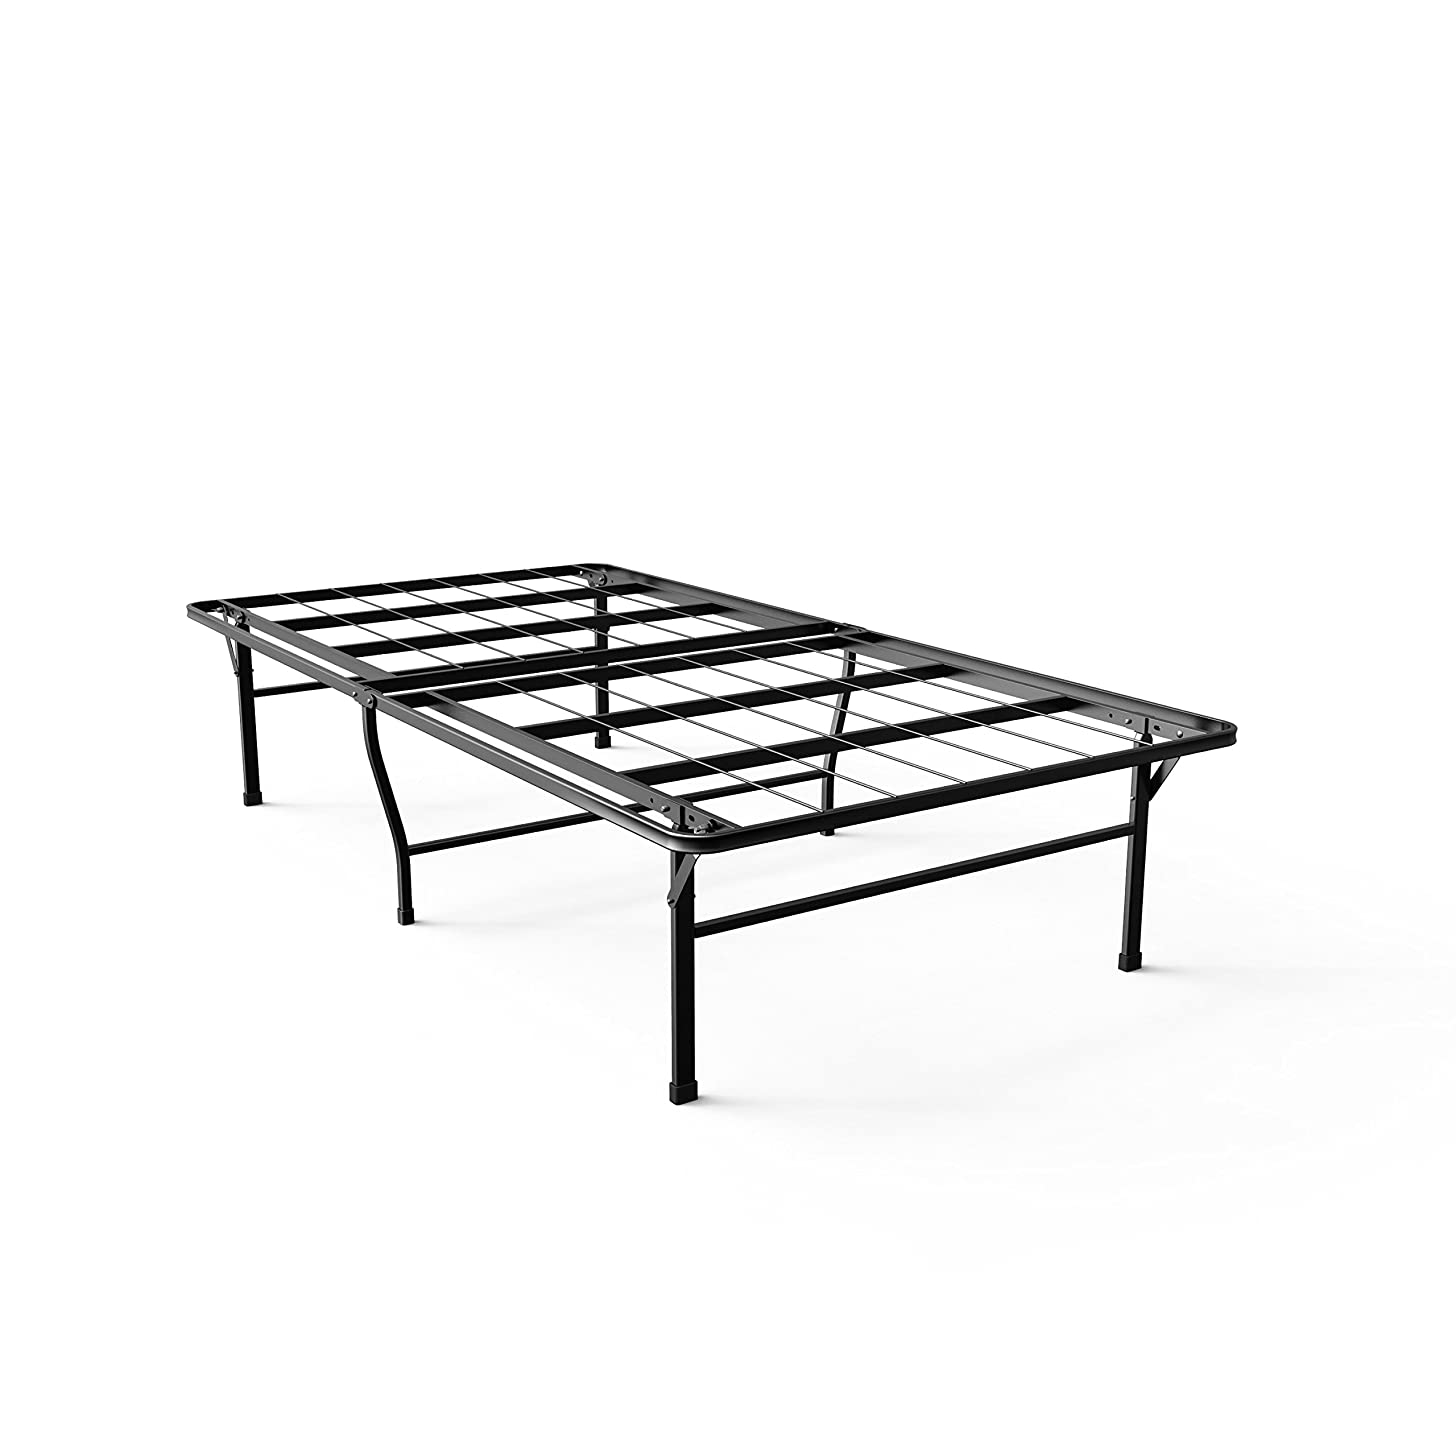 Zinus Gene 16 Inch SmartBase Deluxe Mattress Foundation / 2 Extra Inches high for Under-bed Storage / Platform Bed Frame / Box Spring Replacement / Strong / Sturdy / Quiet Noise-Free, Twin